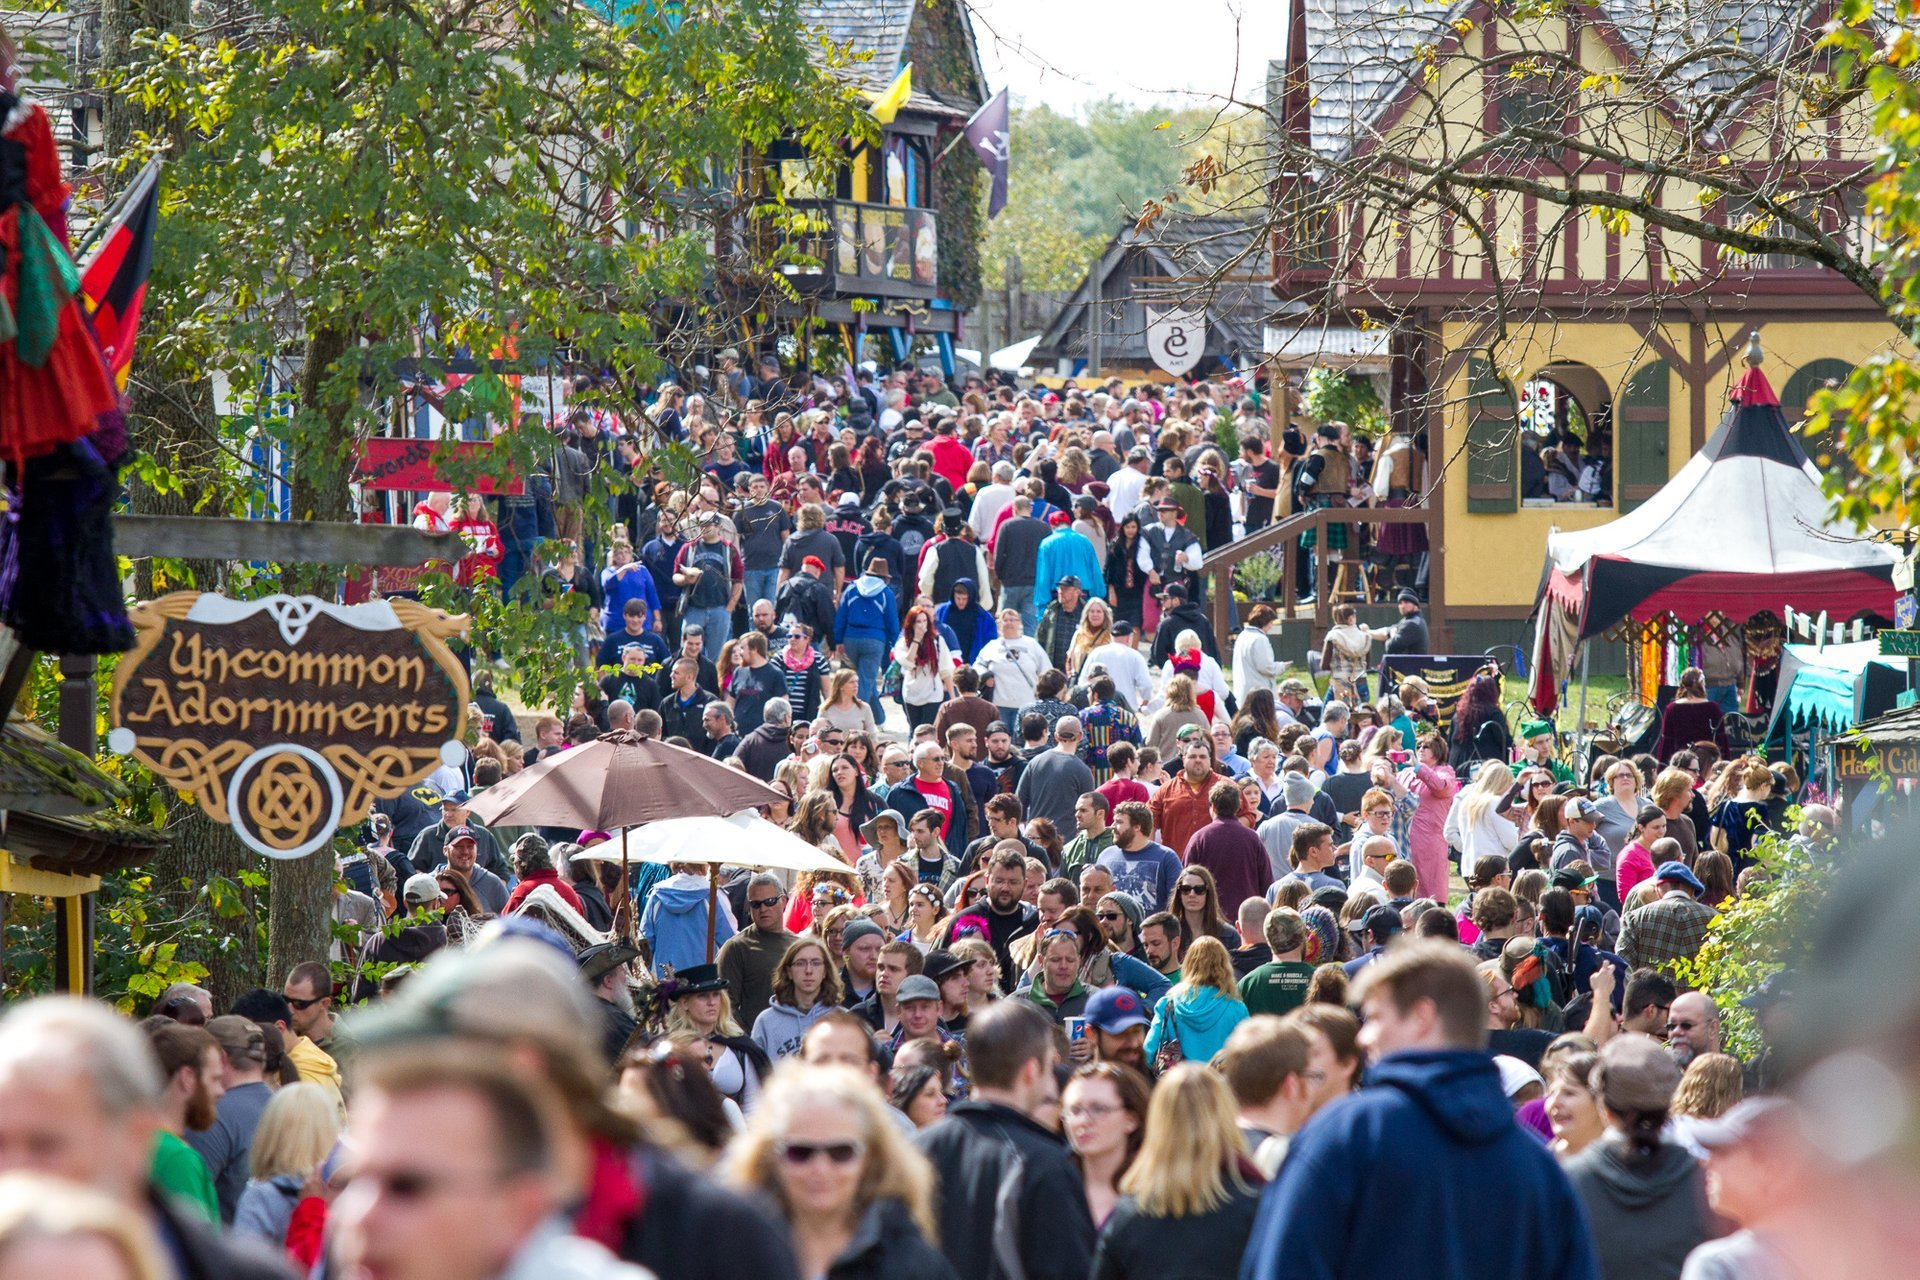 Ohio Renaissance Festival in Ohio - Best Season 2020